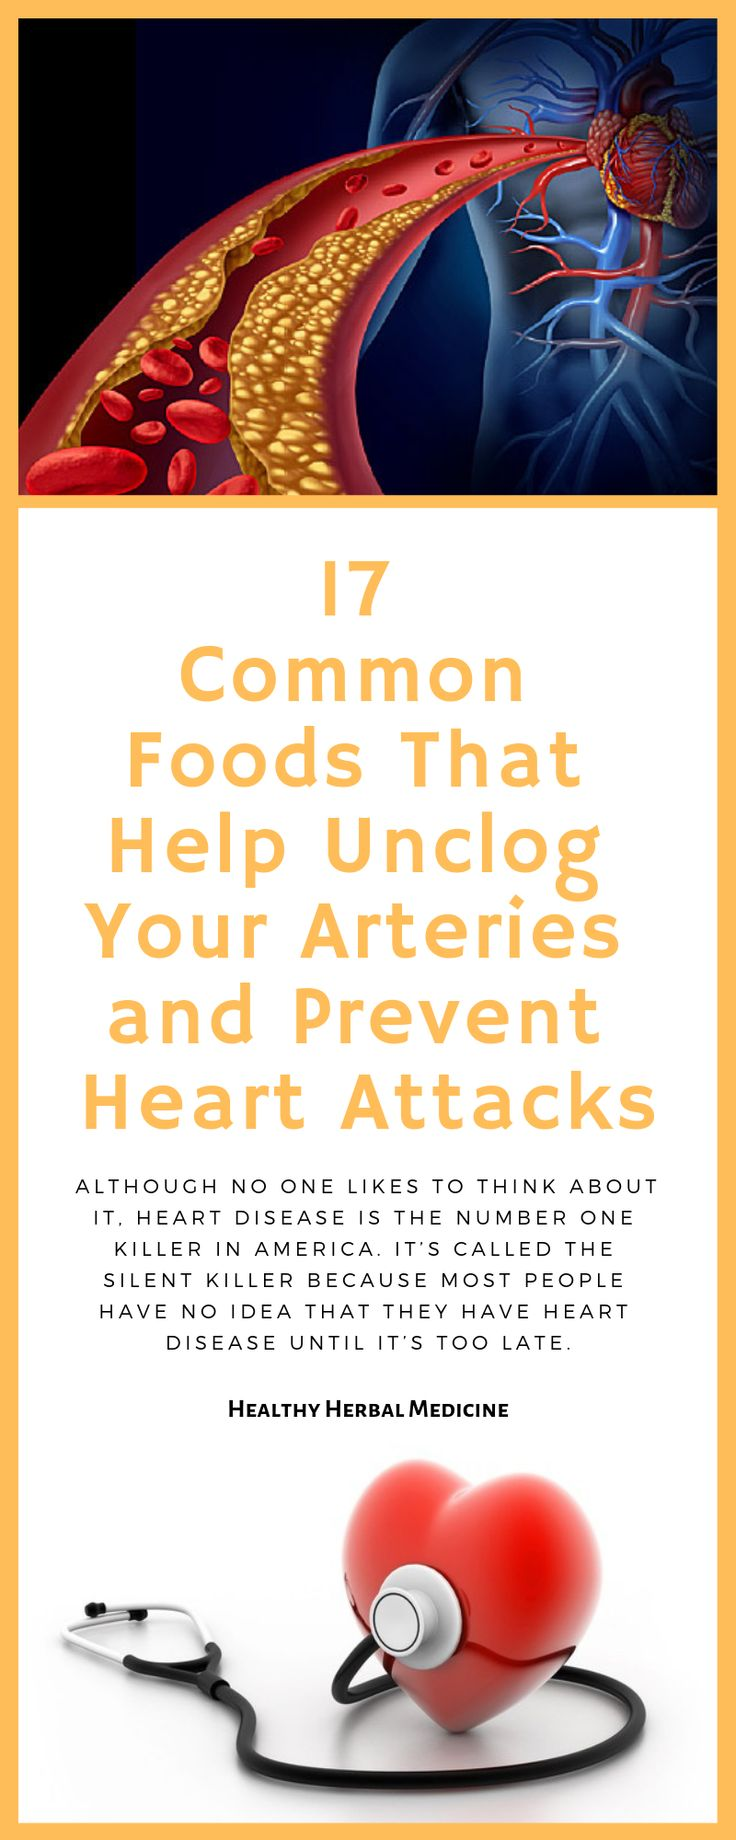 17 Common Foods That Help Unclog Your Arteries and Prevent